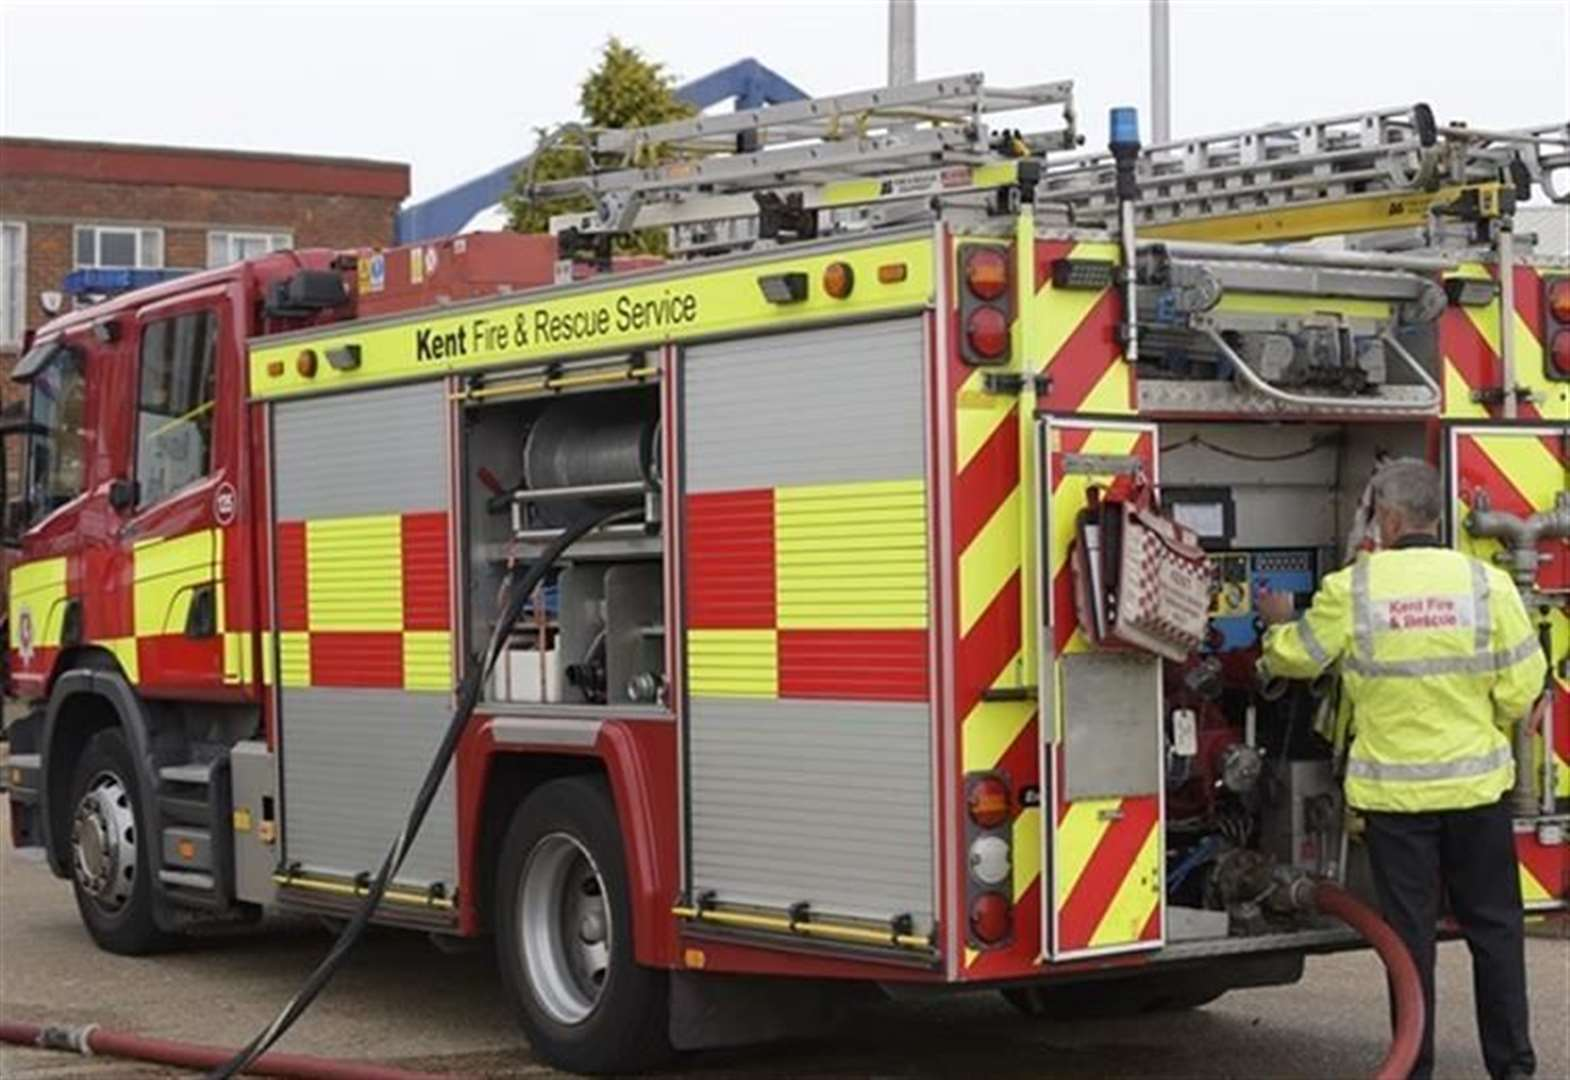 Lucky escape for family after hob fire breaks out